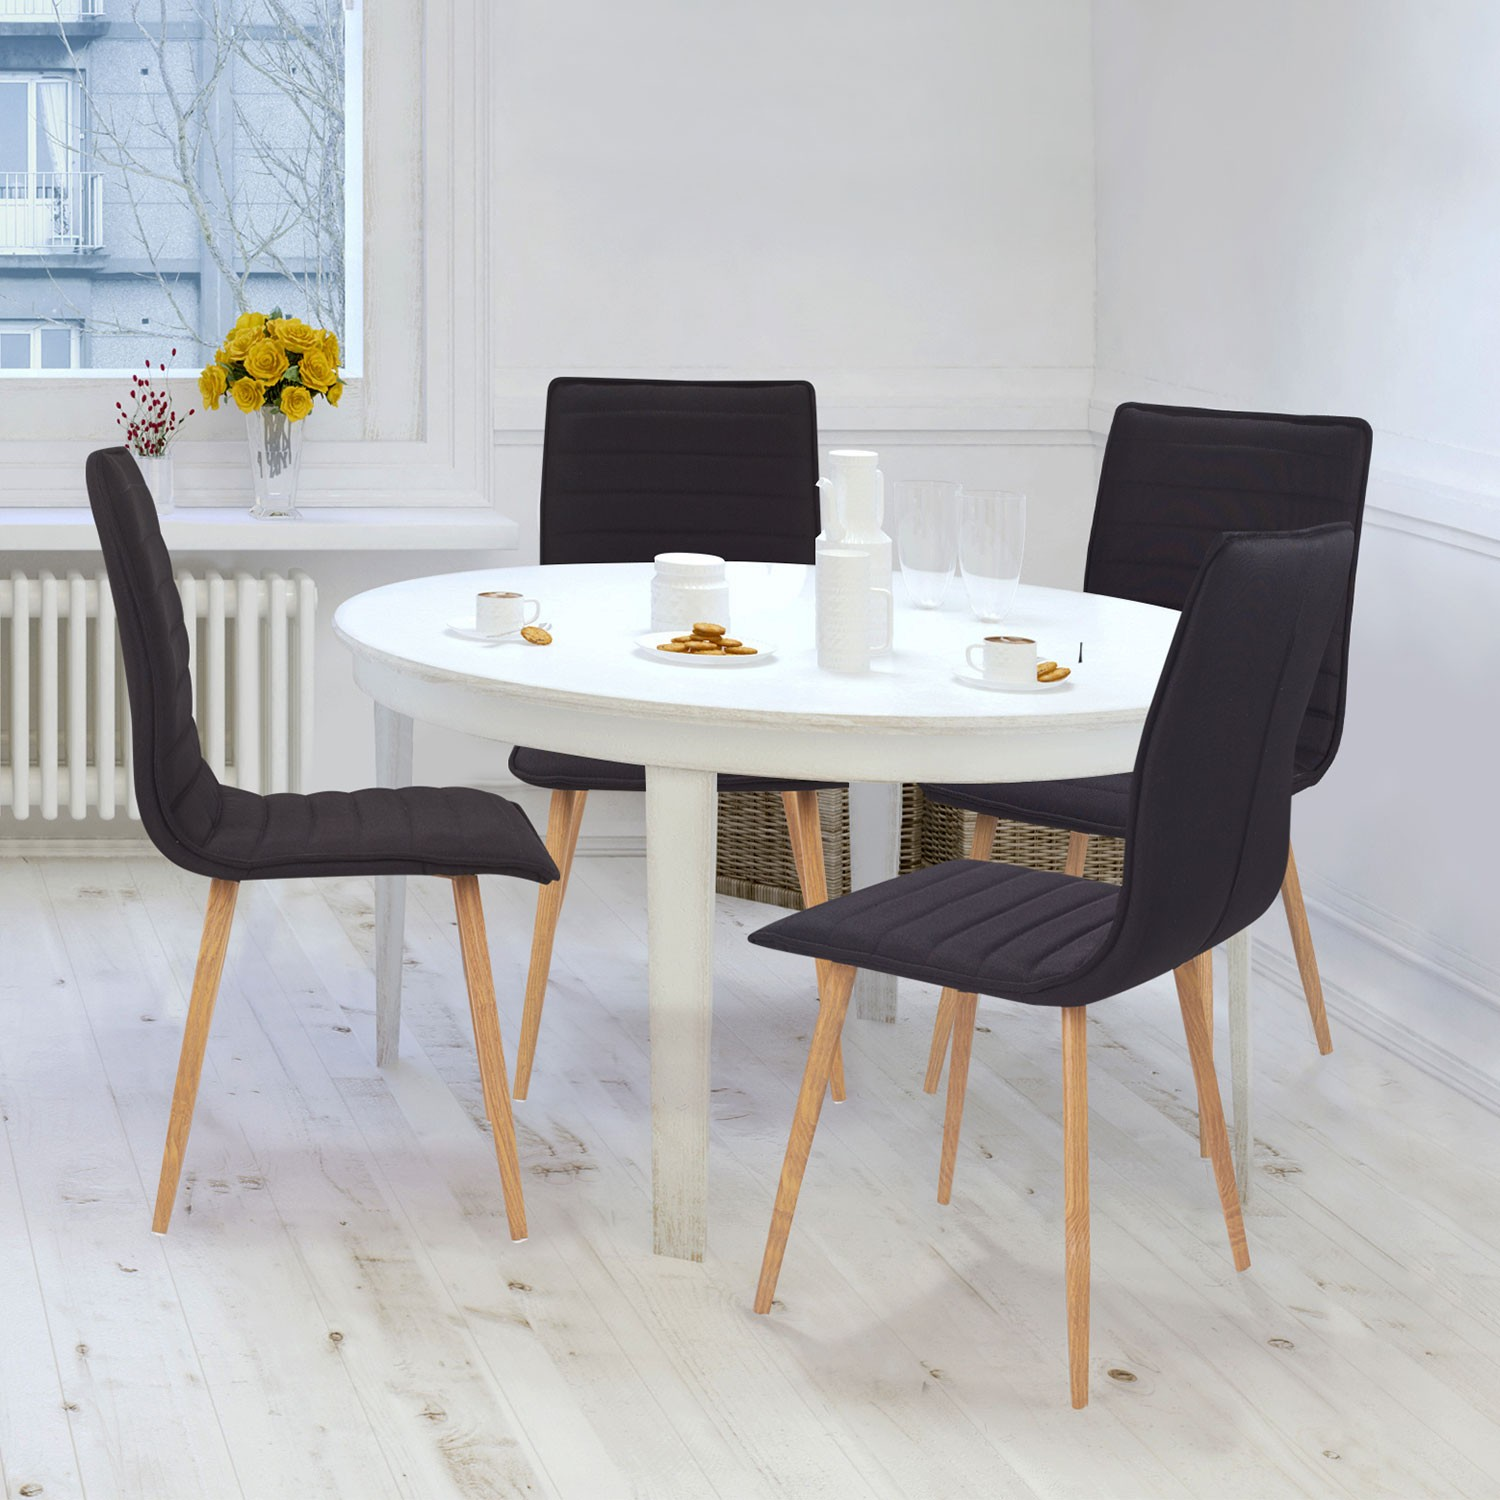 banc avec dossier pour salle a manger awesome grande table salle a manger with banc avec. Black Bedroom Furniture Sets. Home Design Ideas